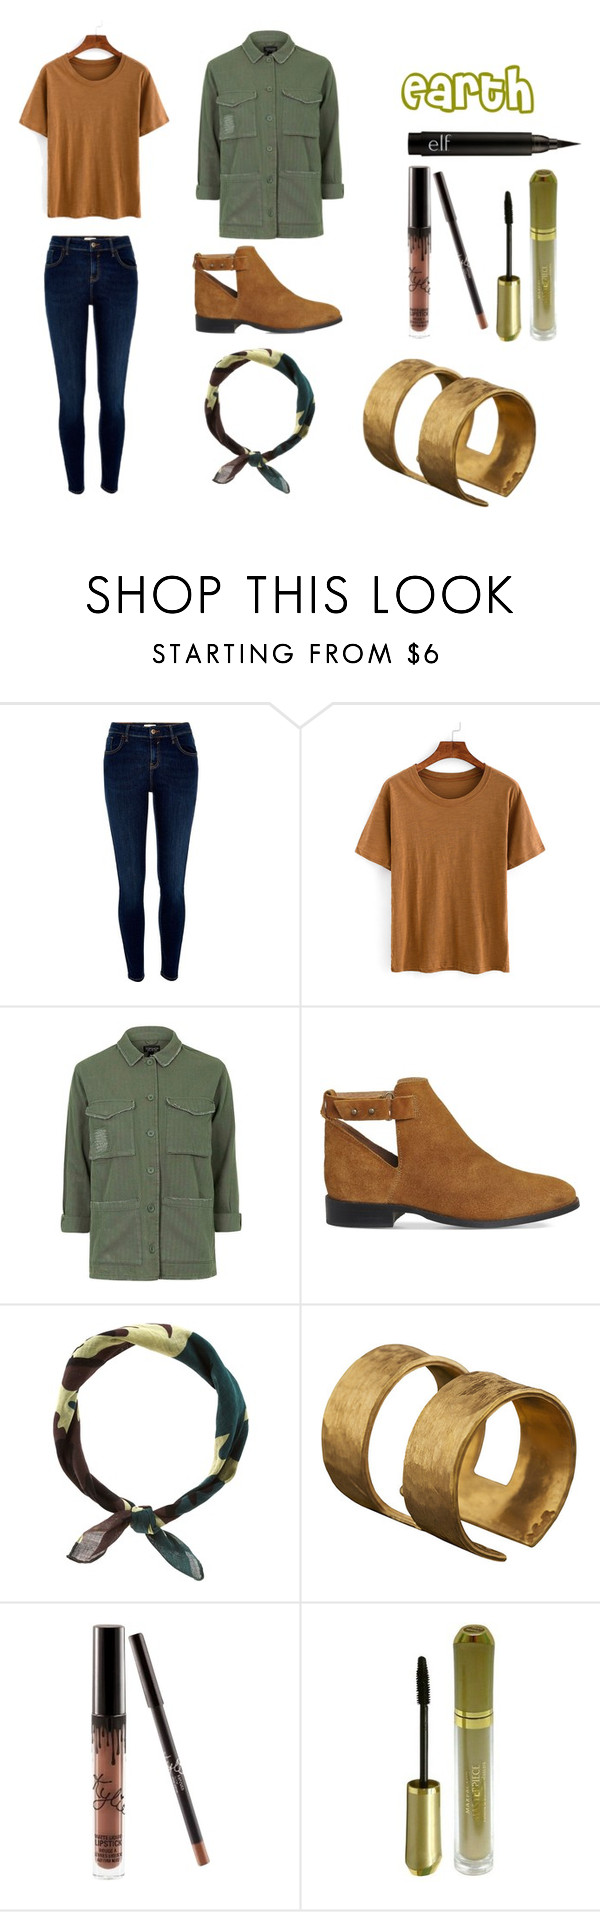 """Earth"" by electronic-lions on Polyvore featuring River Island, Topshop, Office, New Look, ADIN & ROYALE, Max Factor, modern, neutrals, earthtones and atla"